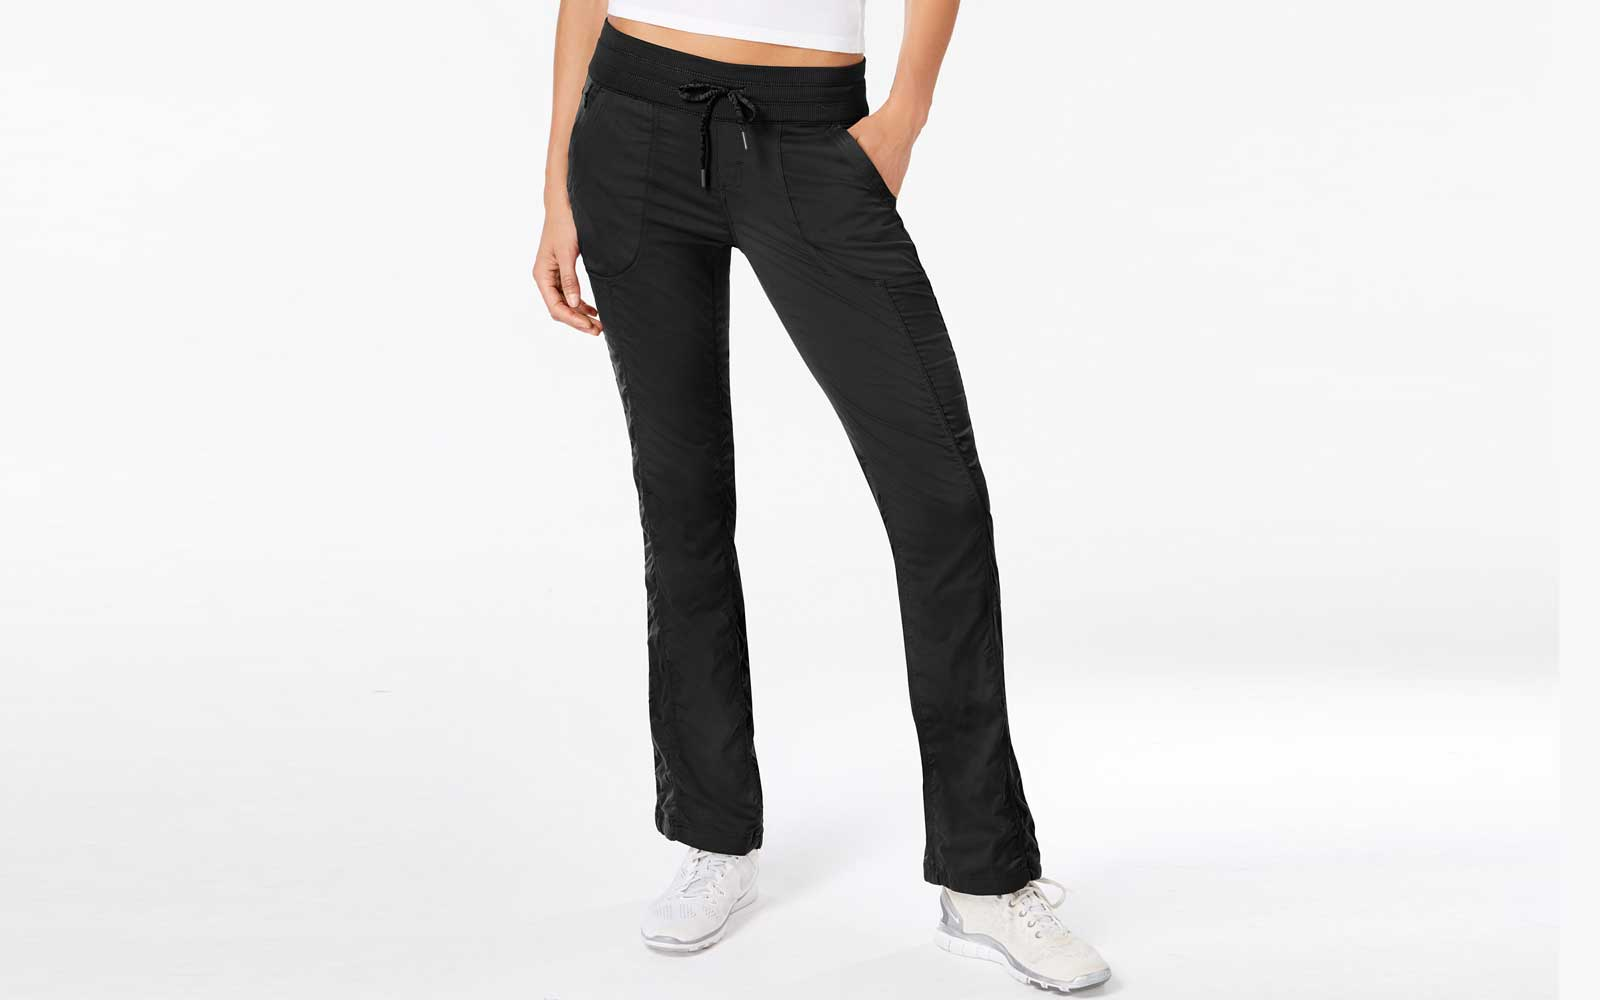 ac39114b5 The Best Travel Pants for Women Who Hate Flying in Jeans | Travel + Leisure